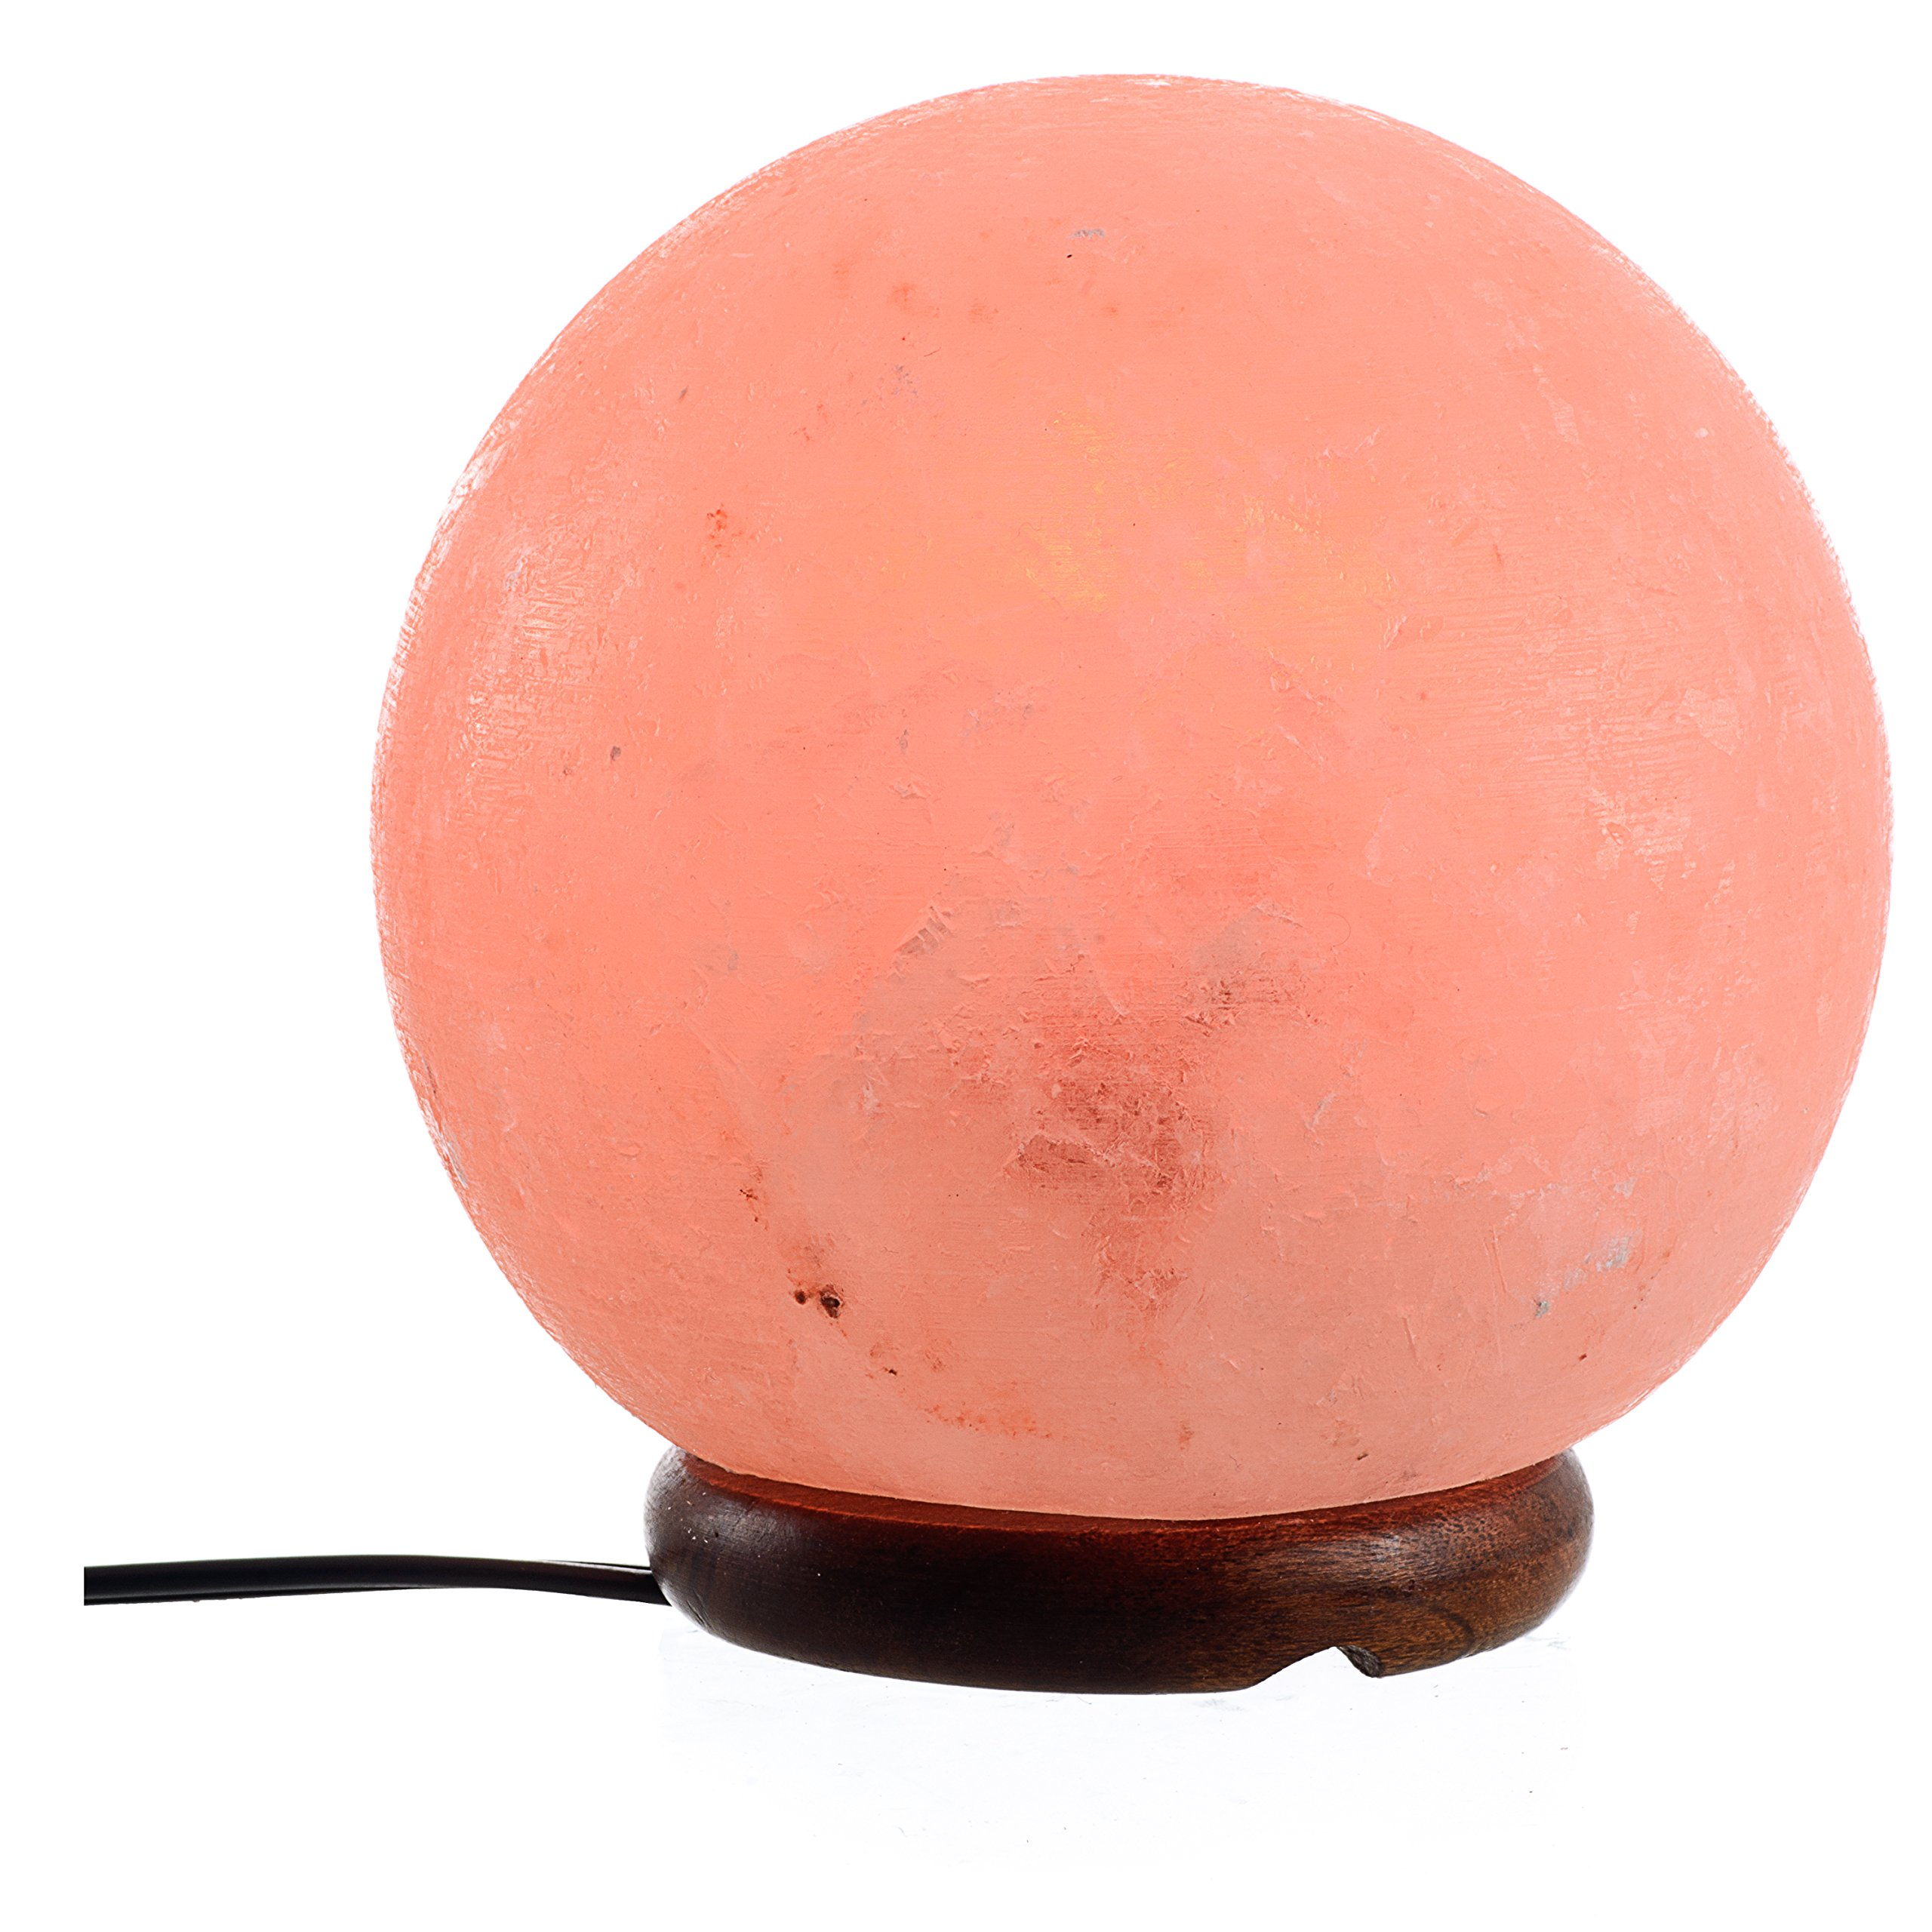 ShartPro Ball Natural Himalayan Salt Lamp - Handcrafted From Himalayan Rock Salt crystals - Beautiful Genuine Neem Wood Base - With 6'' UL Cord And Dimmable Switch + 2 Color bulbs, Clear and Red by ShartPro (Image #2)